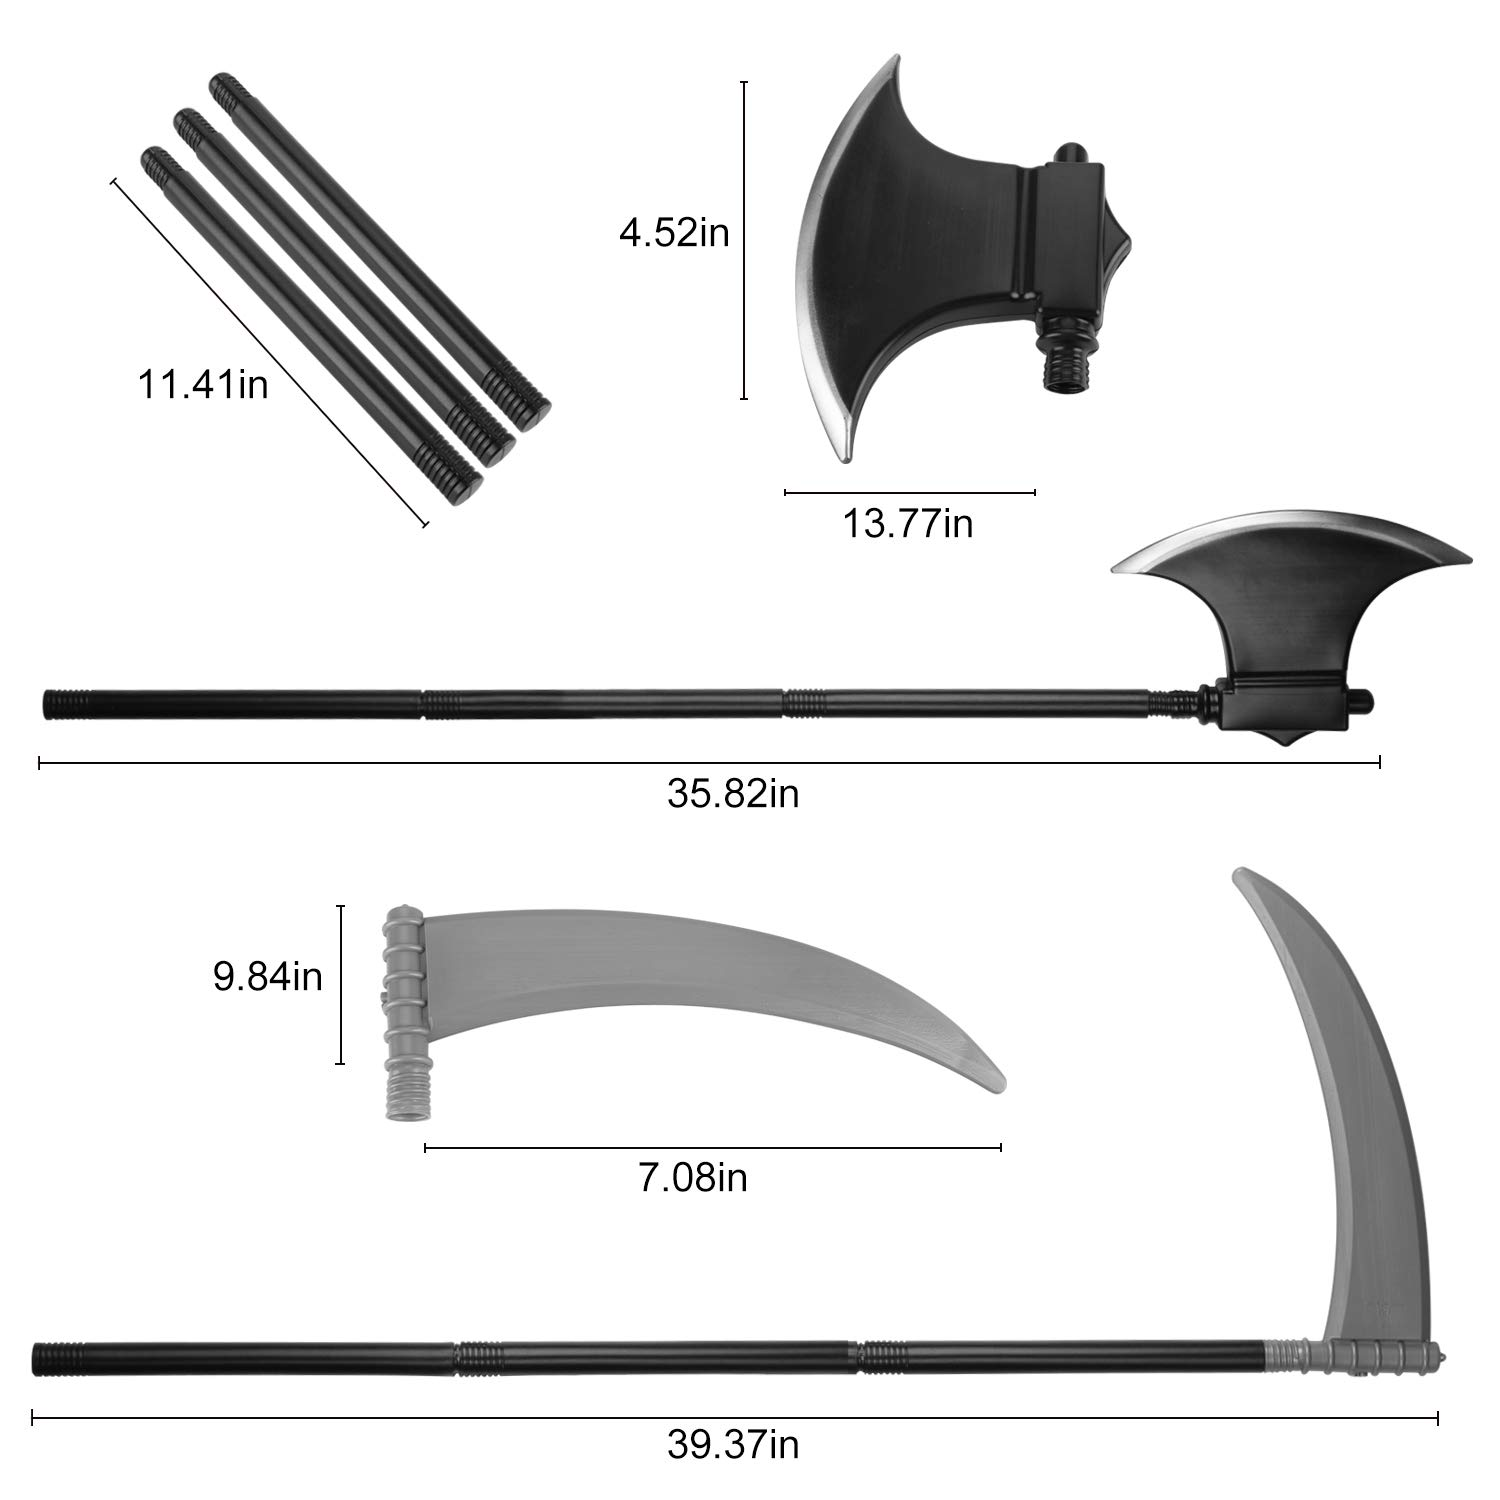 Fansport 2PCS Halloween Prop Novelty Simulated Axe Sickle Costume Prop Haunted House Prop